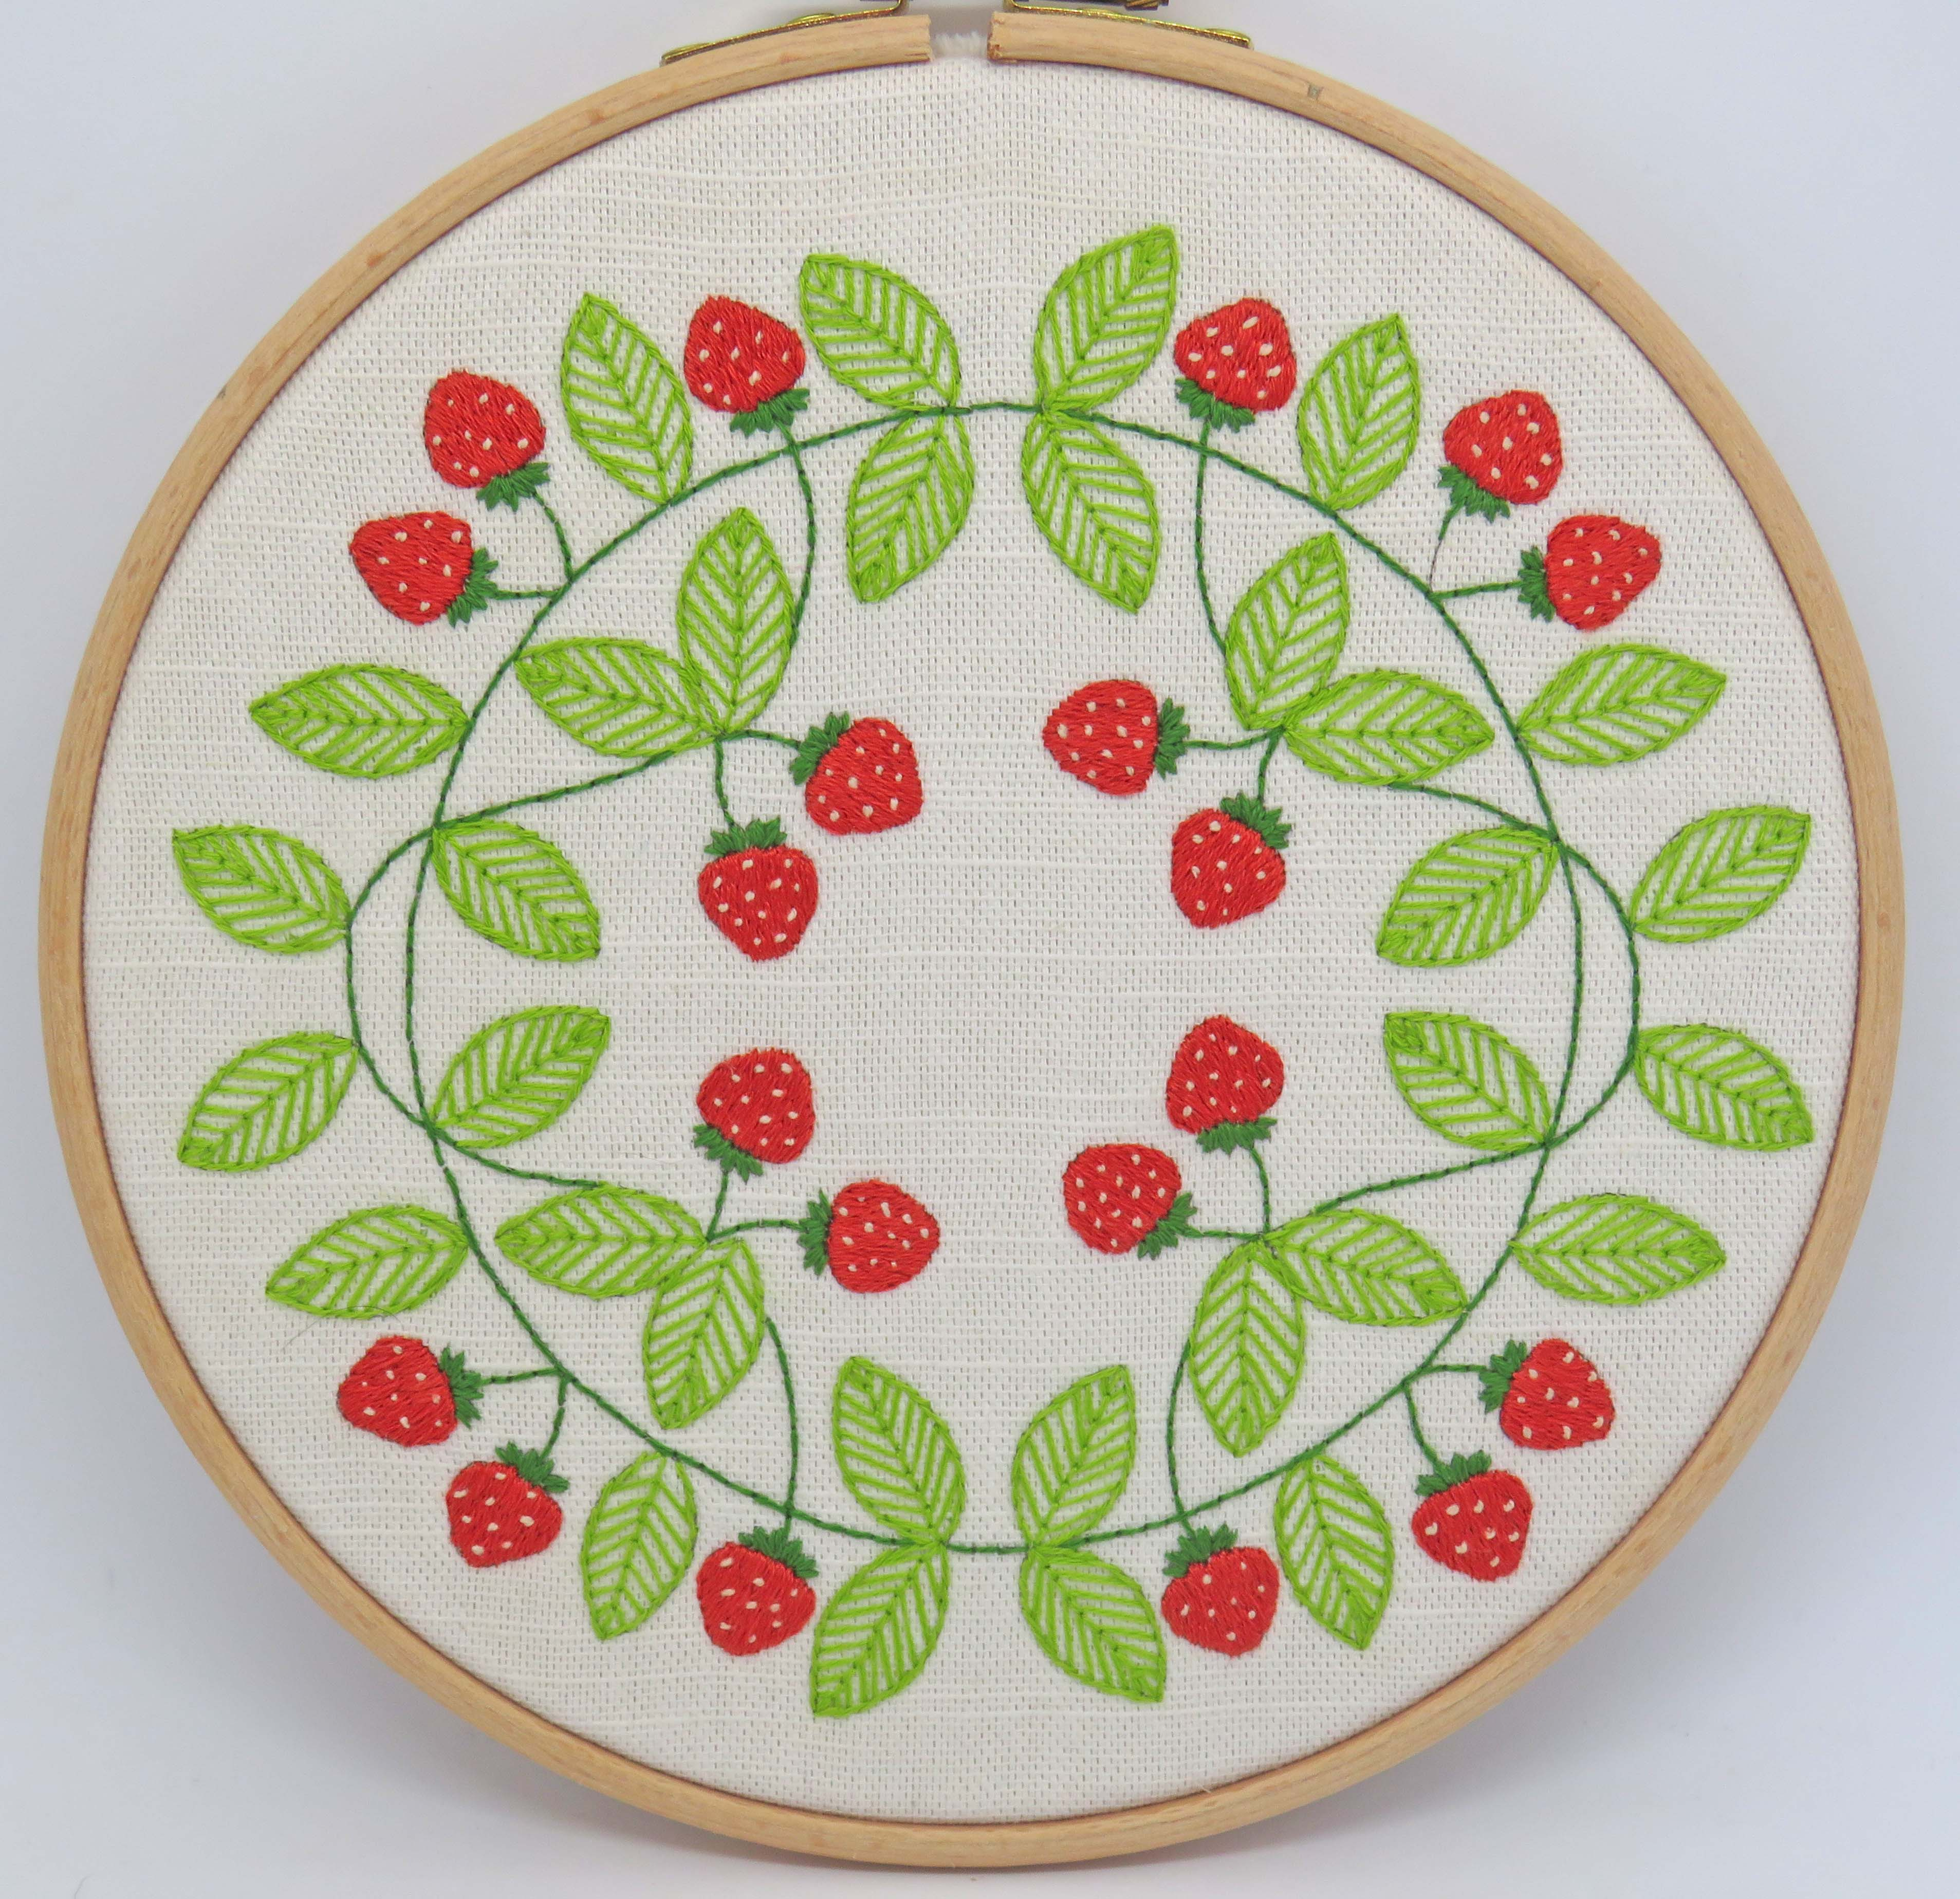 Strawberry swirl hand embroidery pattern by StitchDoodles